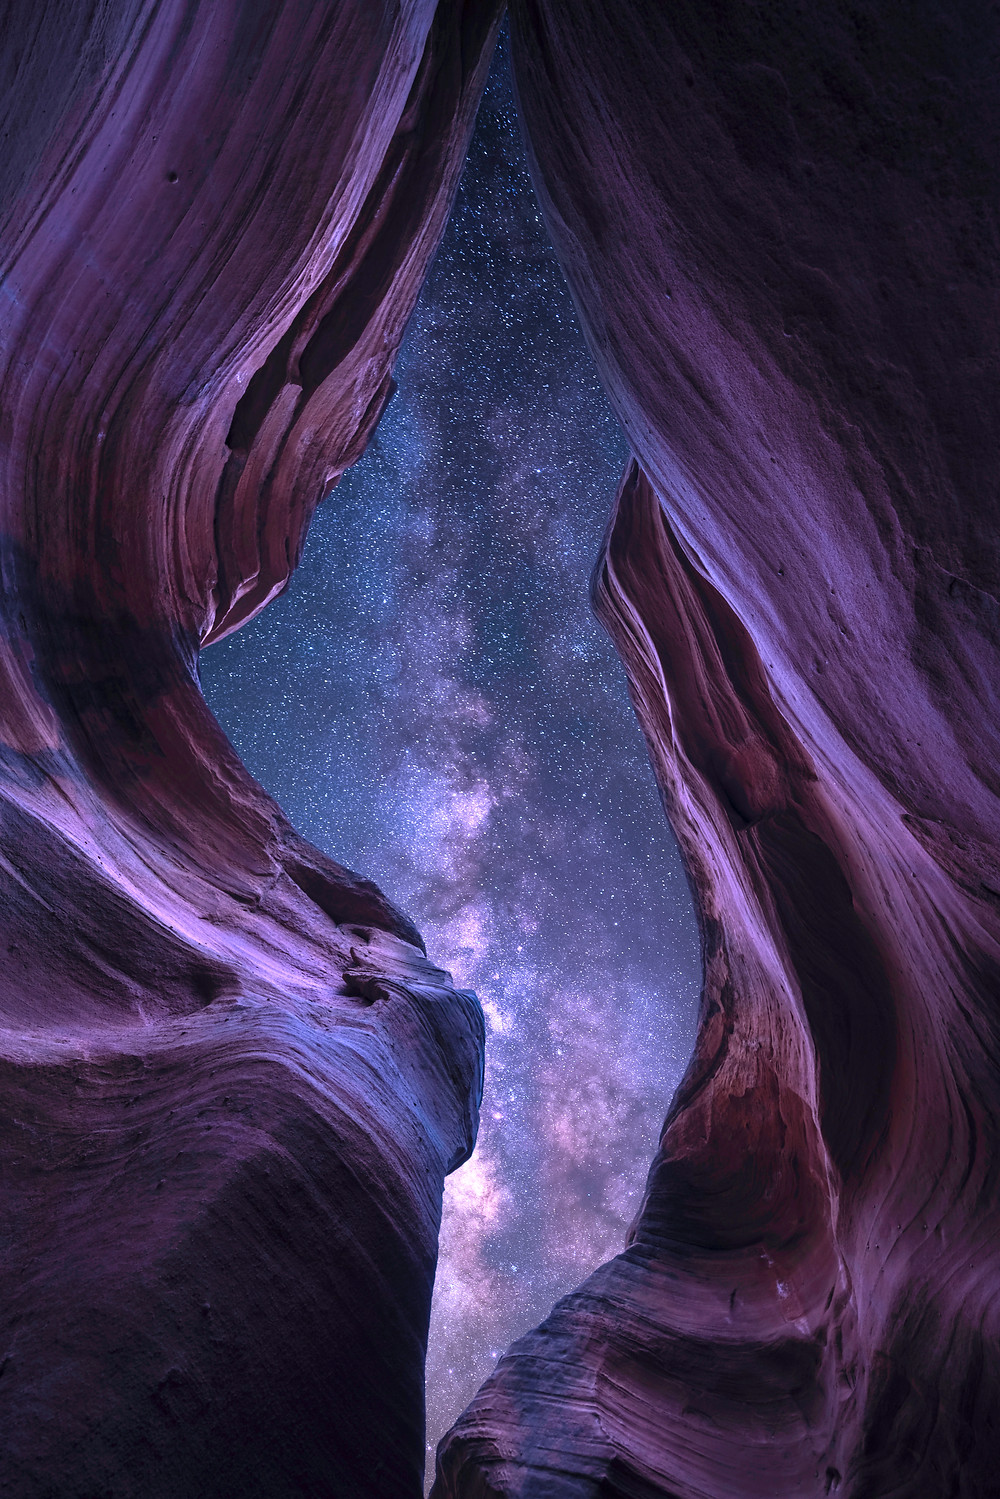 Slot Canyon in Utah with the Milky Way